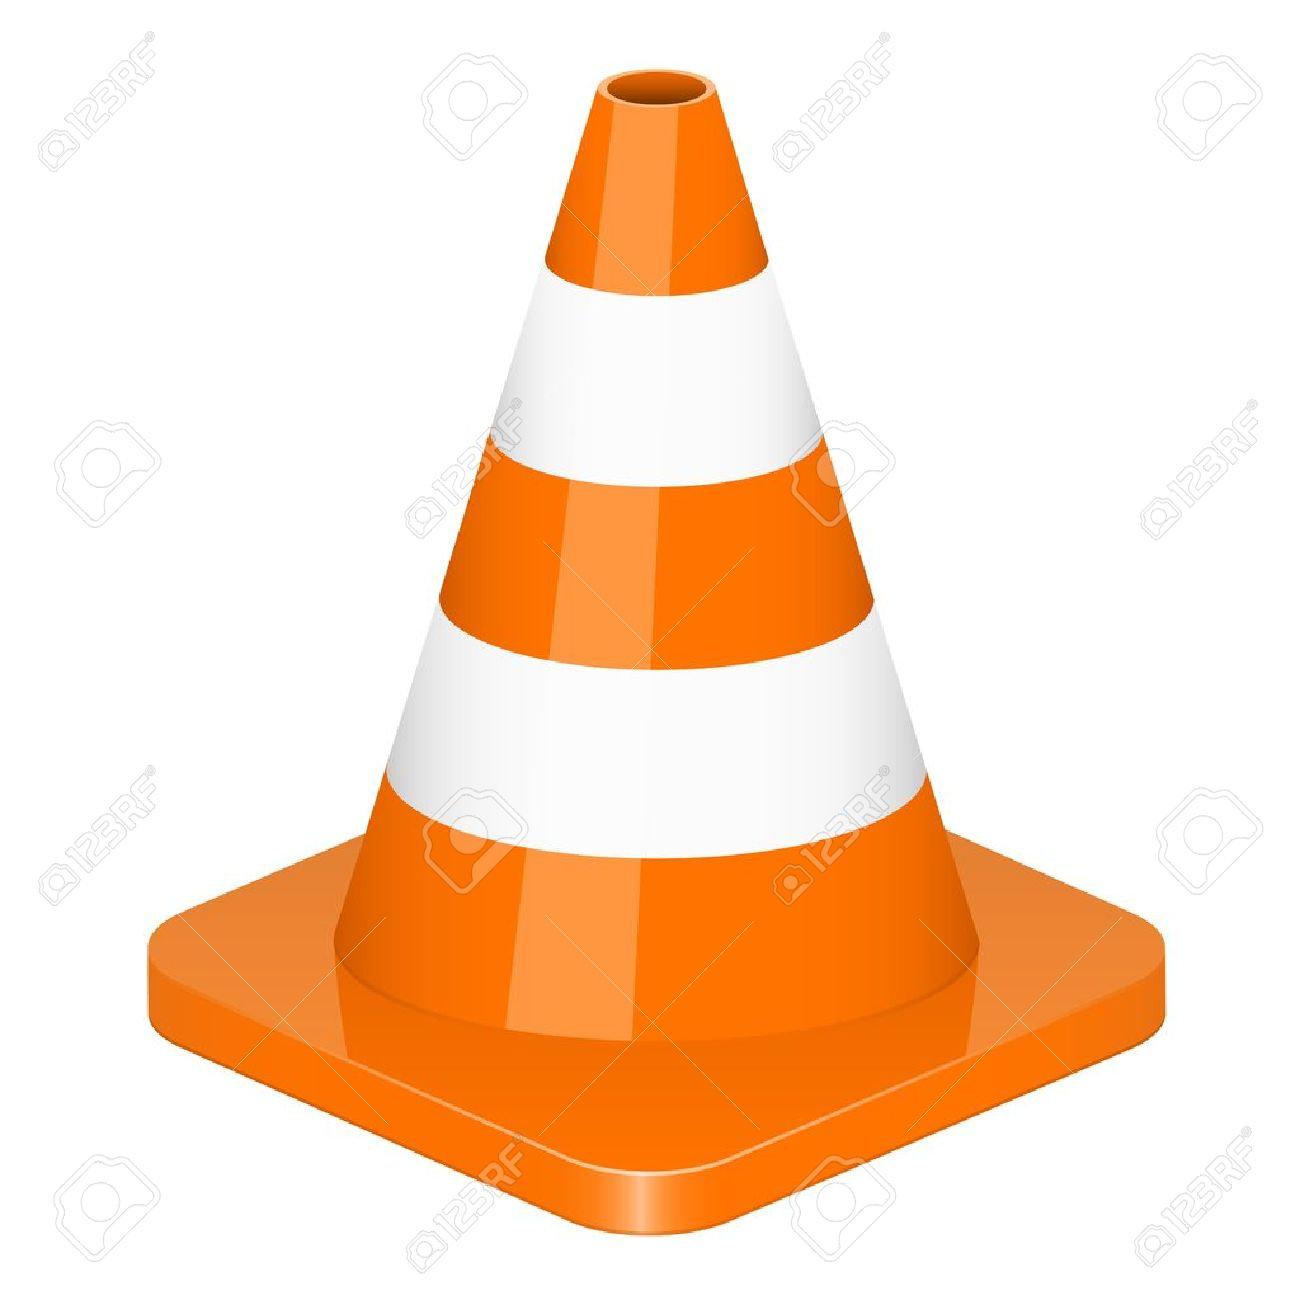 7 608 traffic cone stock vector illustration and royalty free rh 123rf com coco clip art cinema clipart